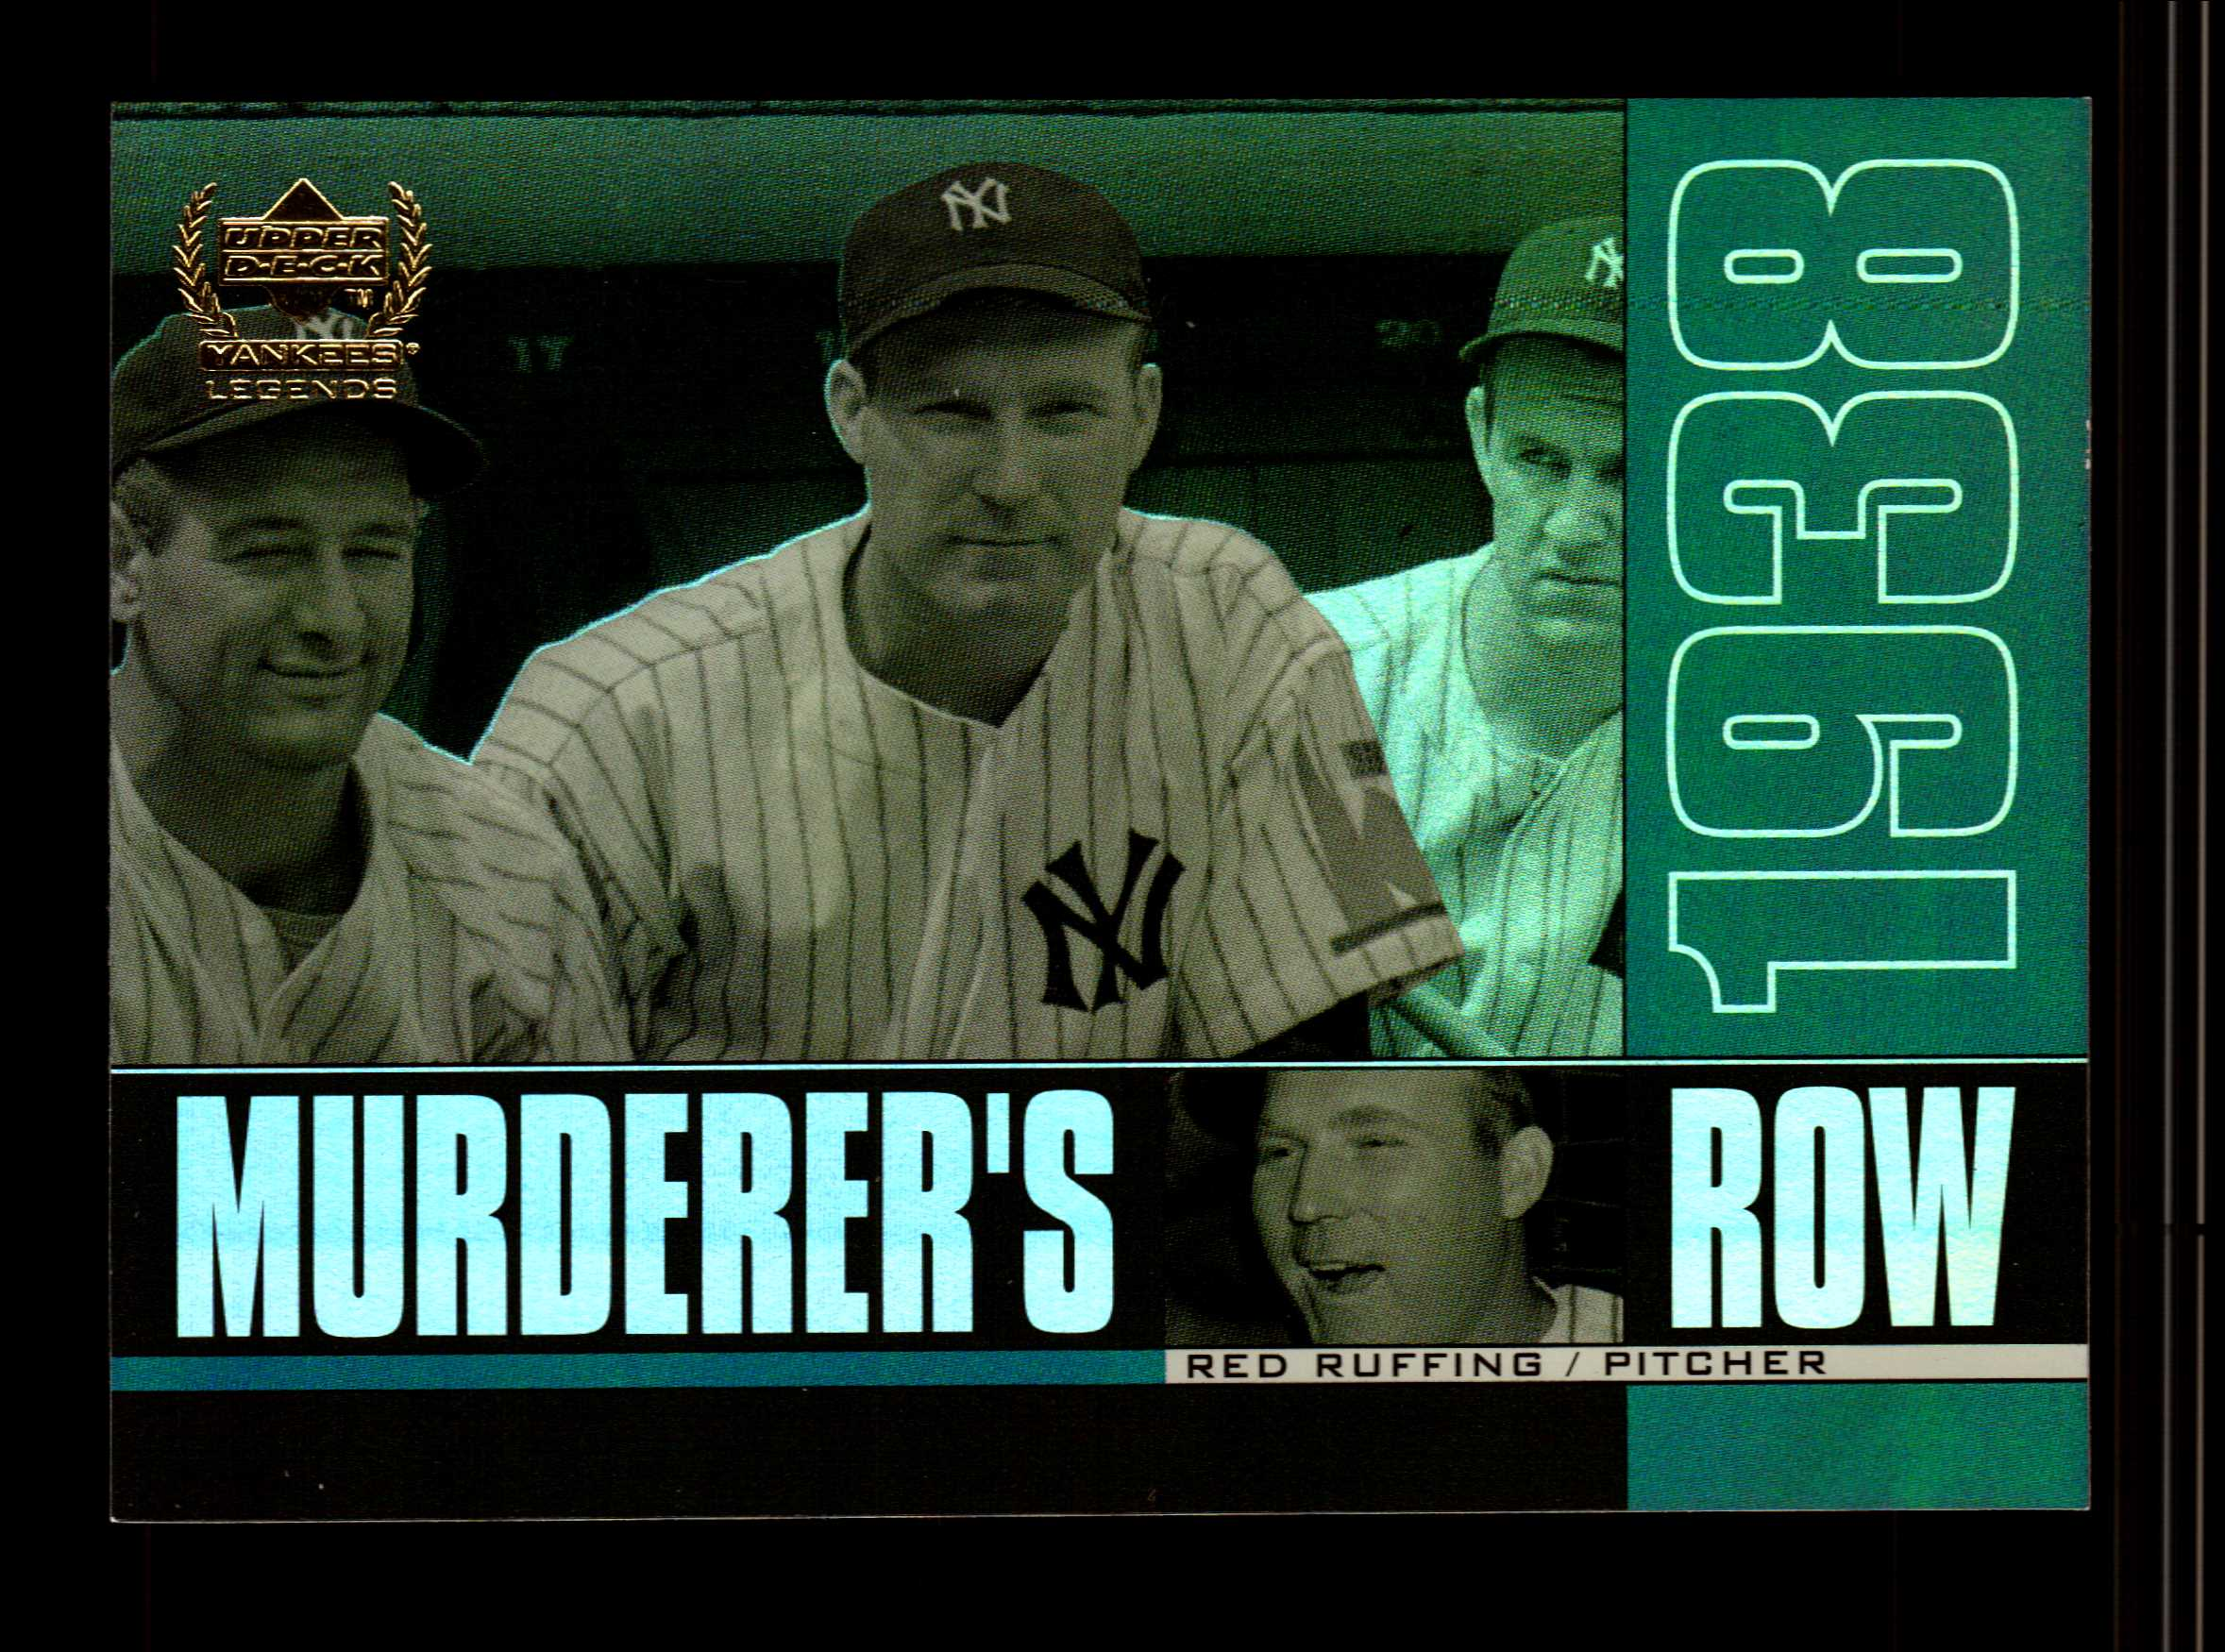 2000 Upper Deck Yankees Legends Murderer's Row #MR8 Red Ruffing